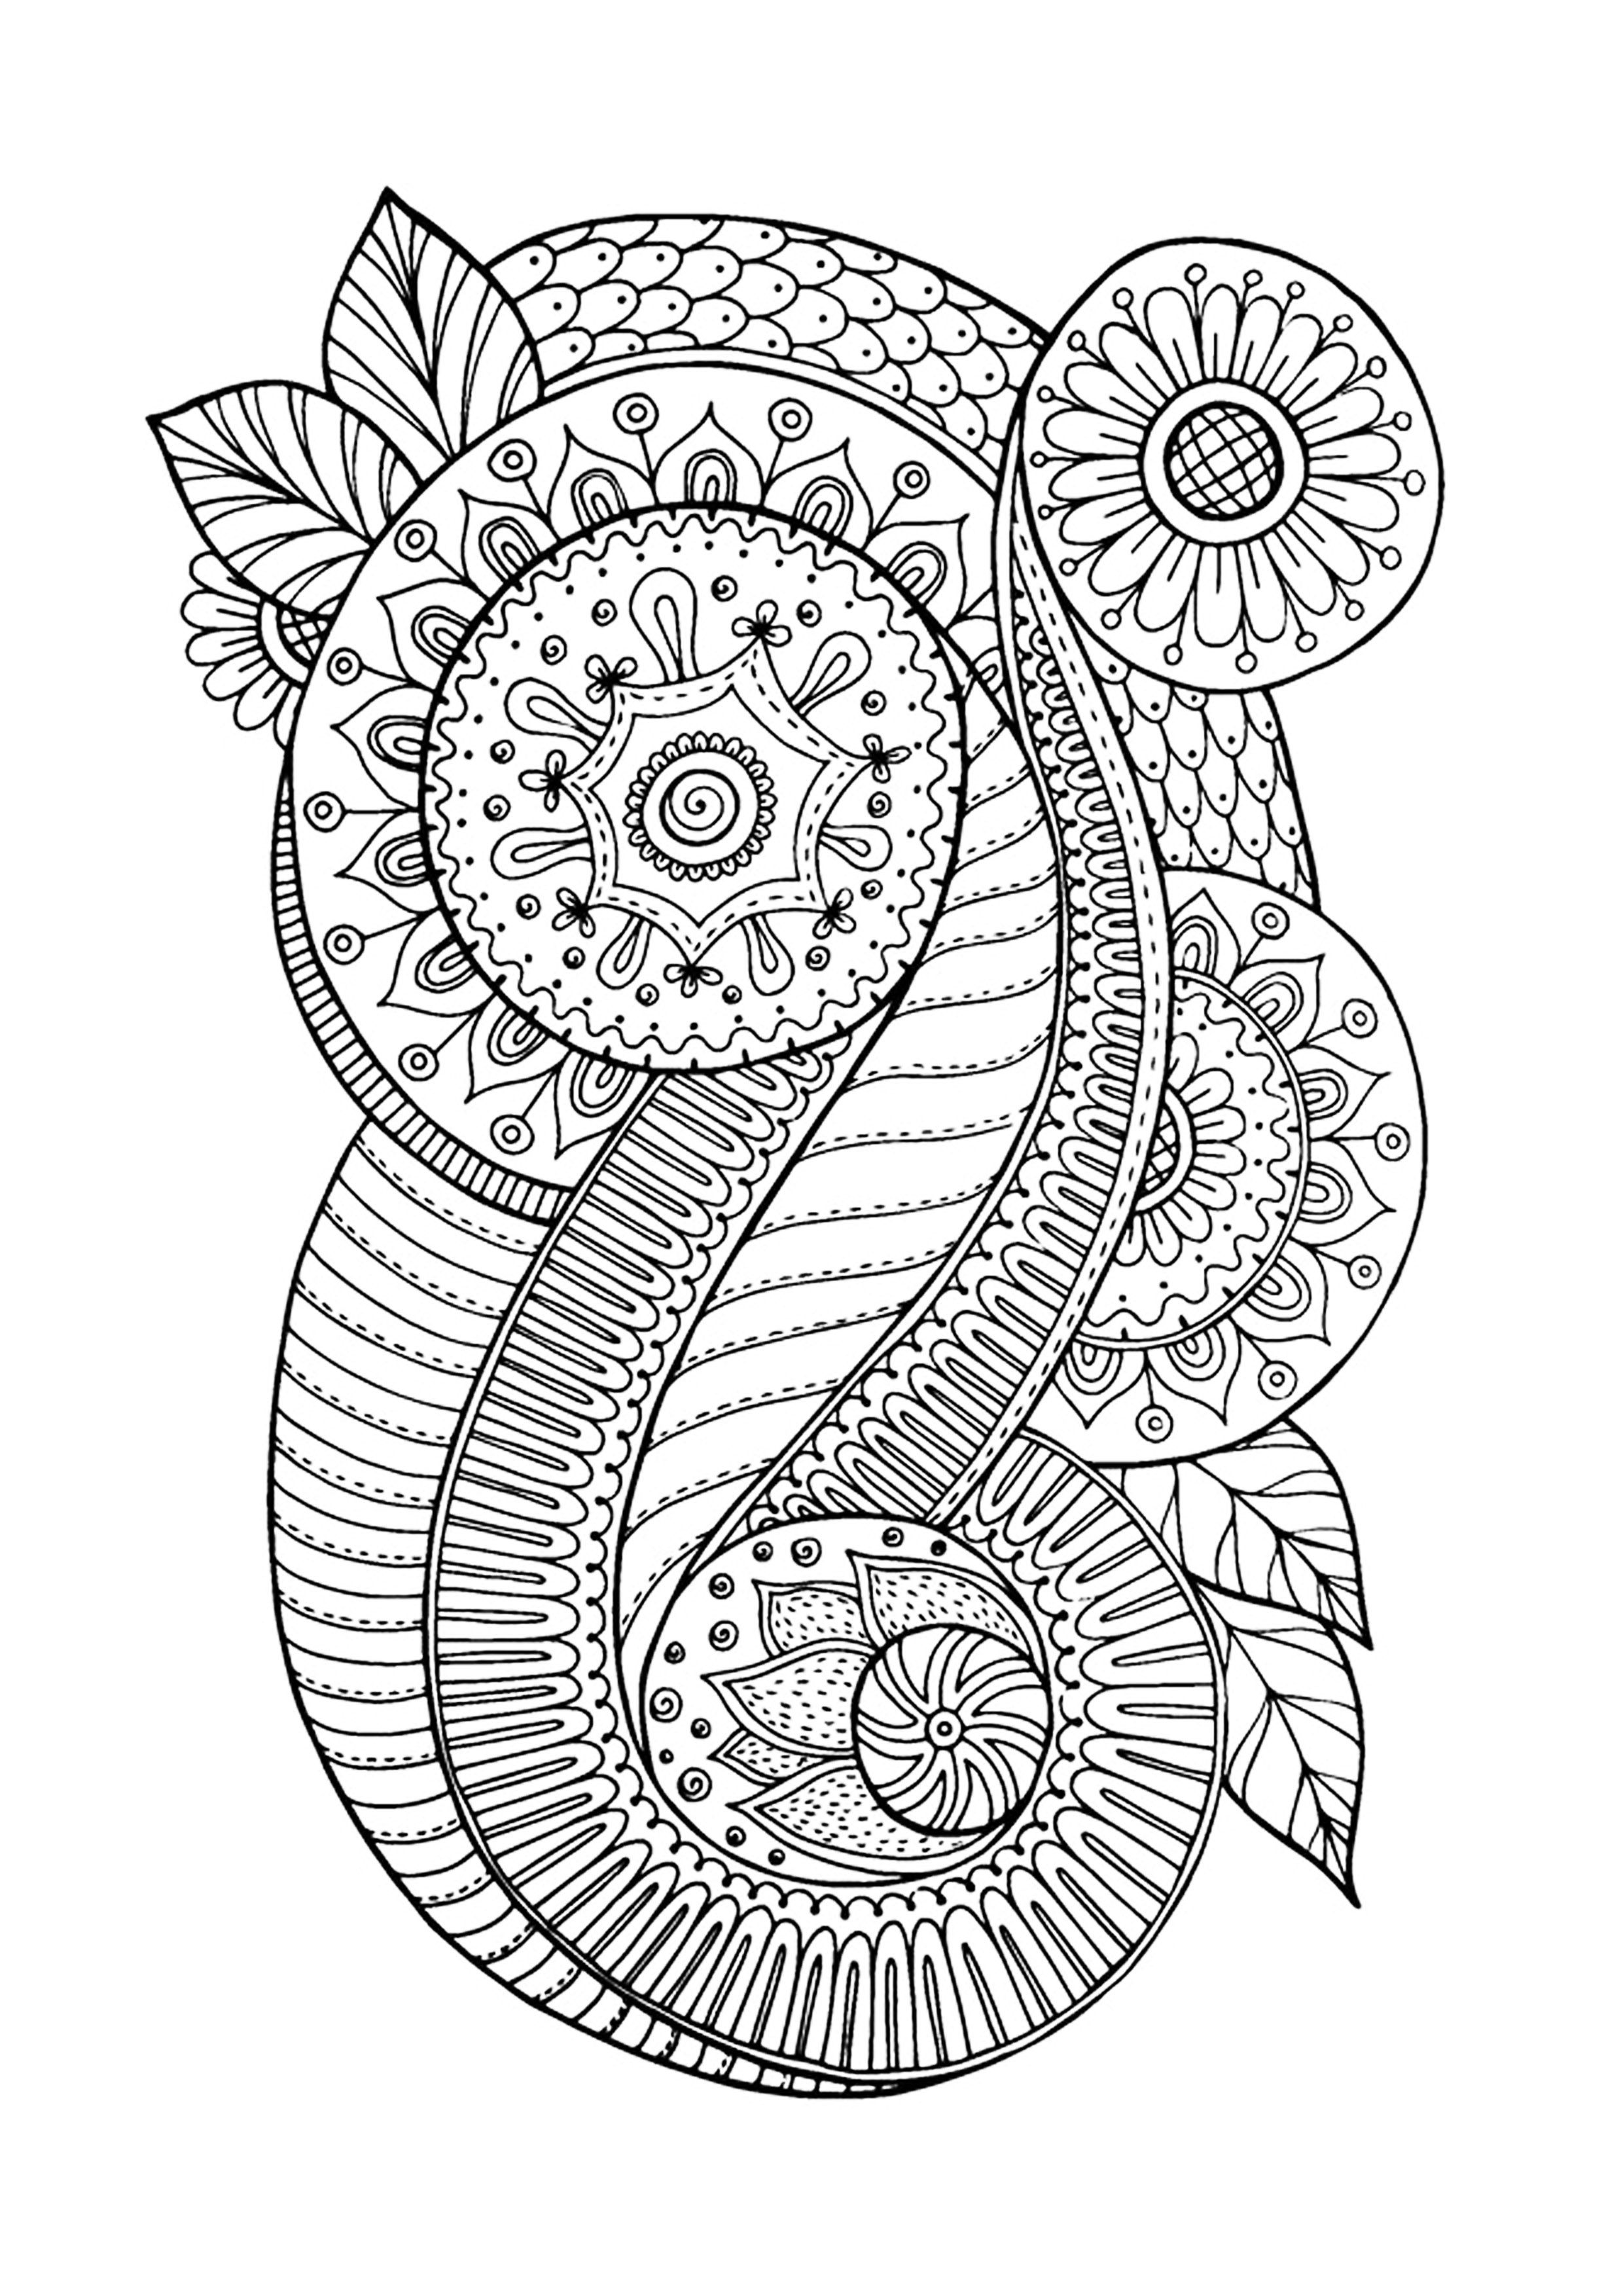 free zen coloring pages zen coloring pages pdf at getdrawings free download pages coloring zen free